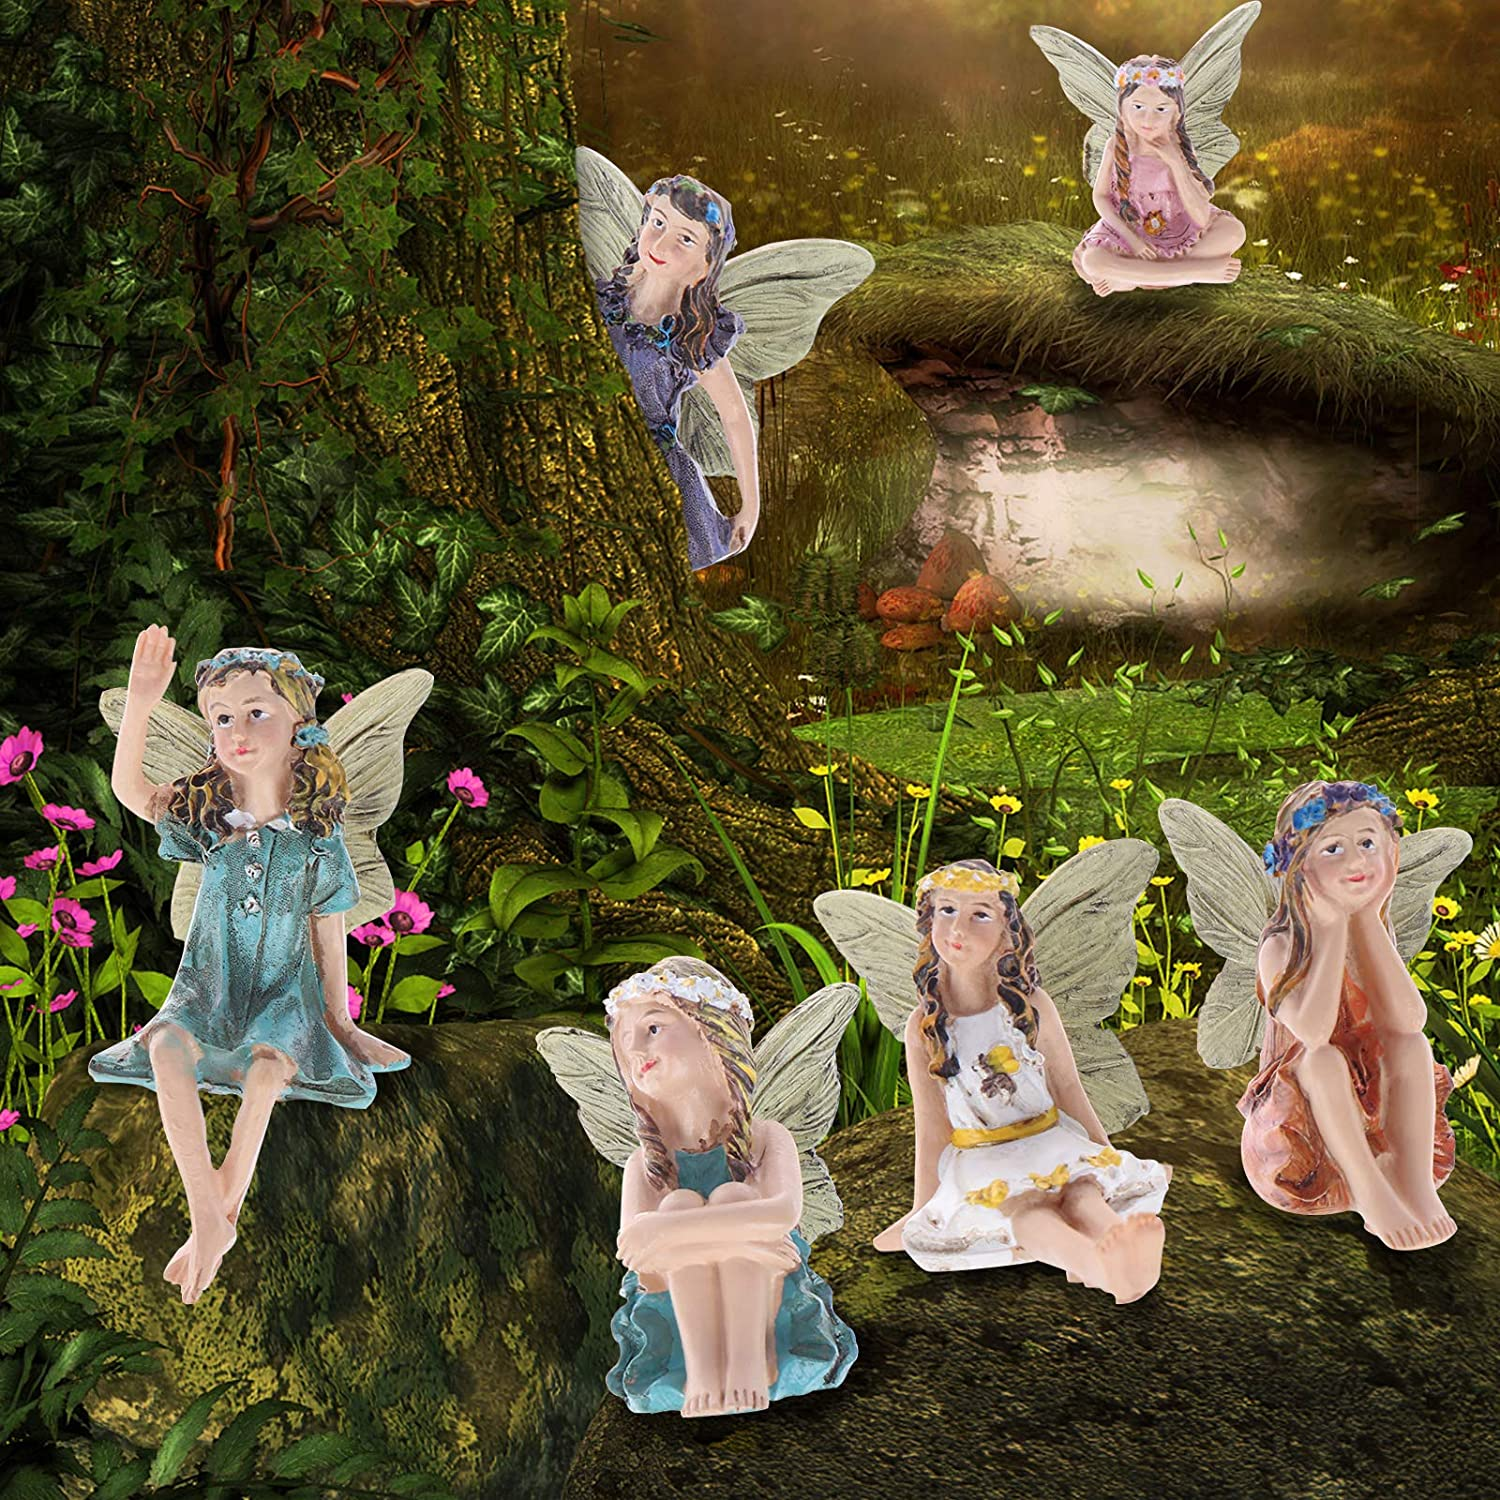 6-Pack Flower Fairy Pixie Fly Wing Miniatures Resin Flower Fairy Figures Figurines Fairy Garden Accessories Dollhouse Ornament Garden Decoration